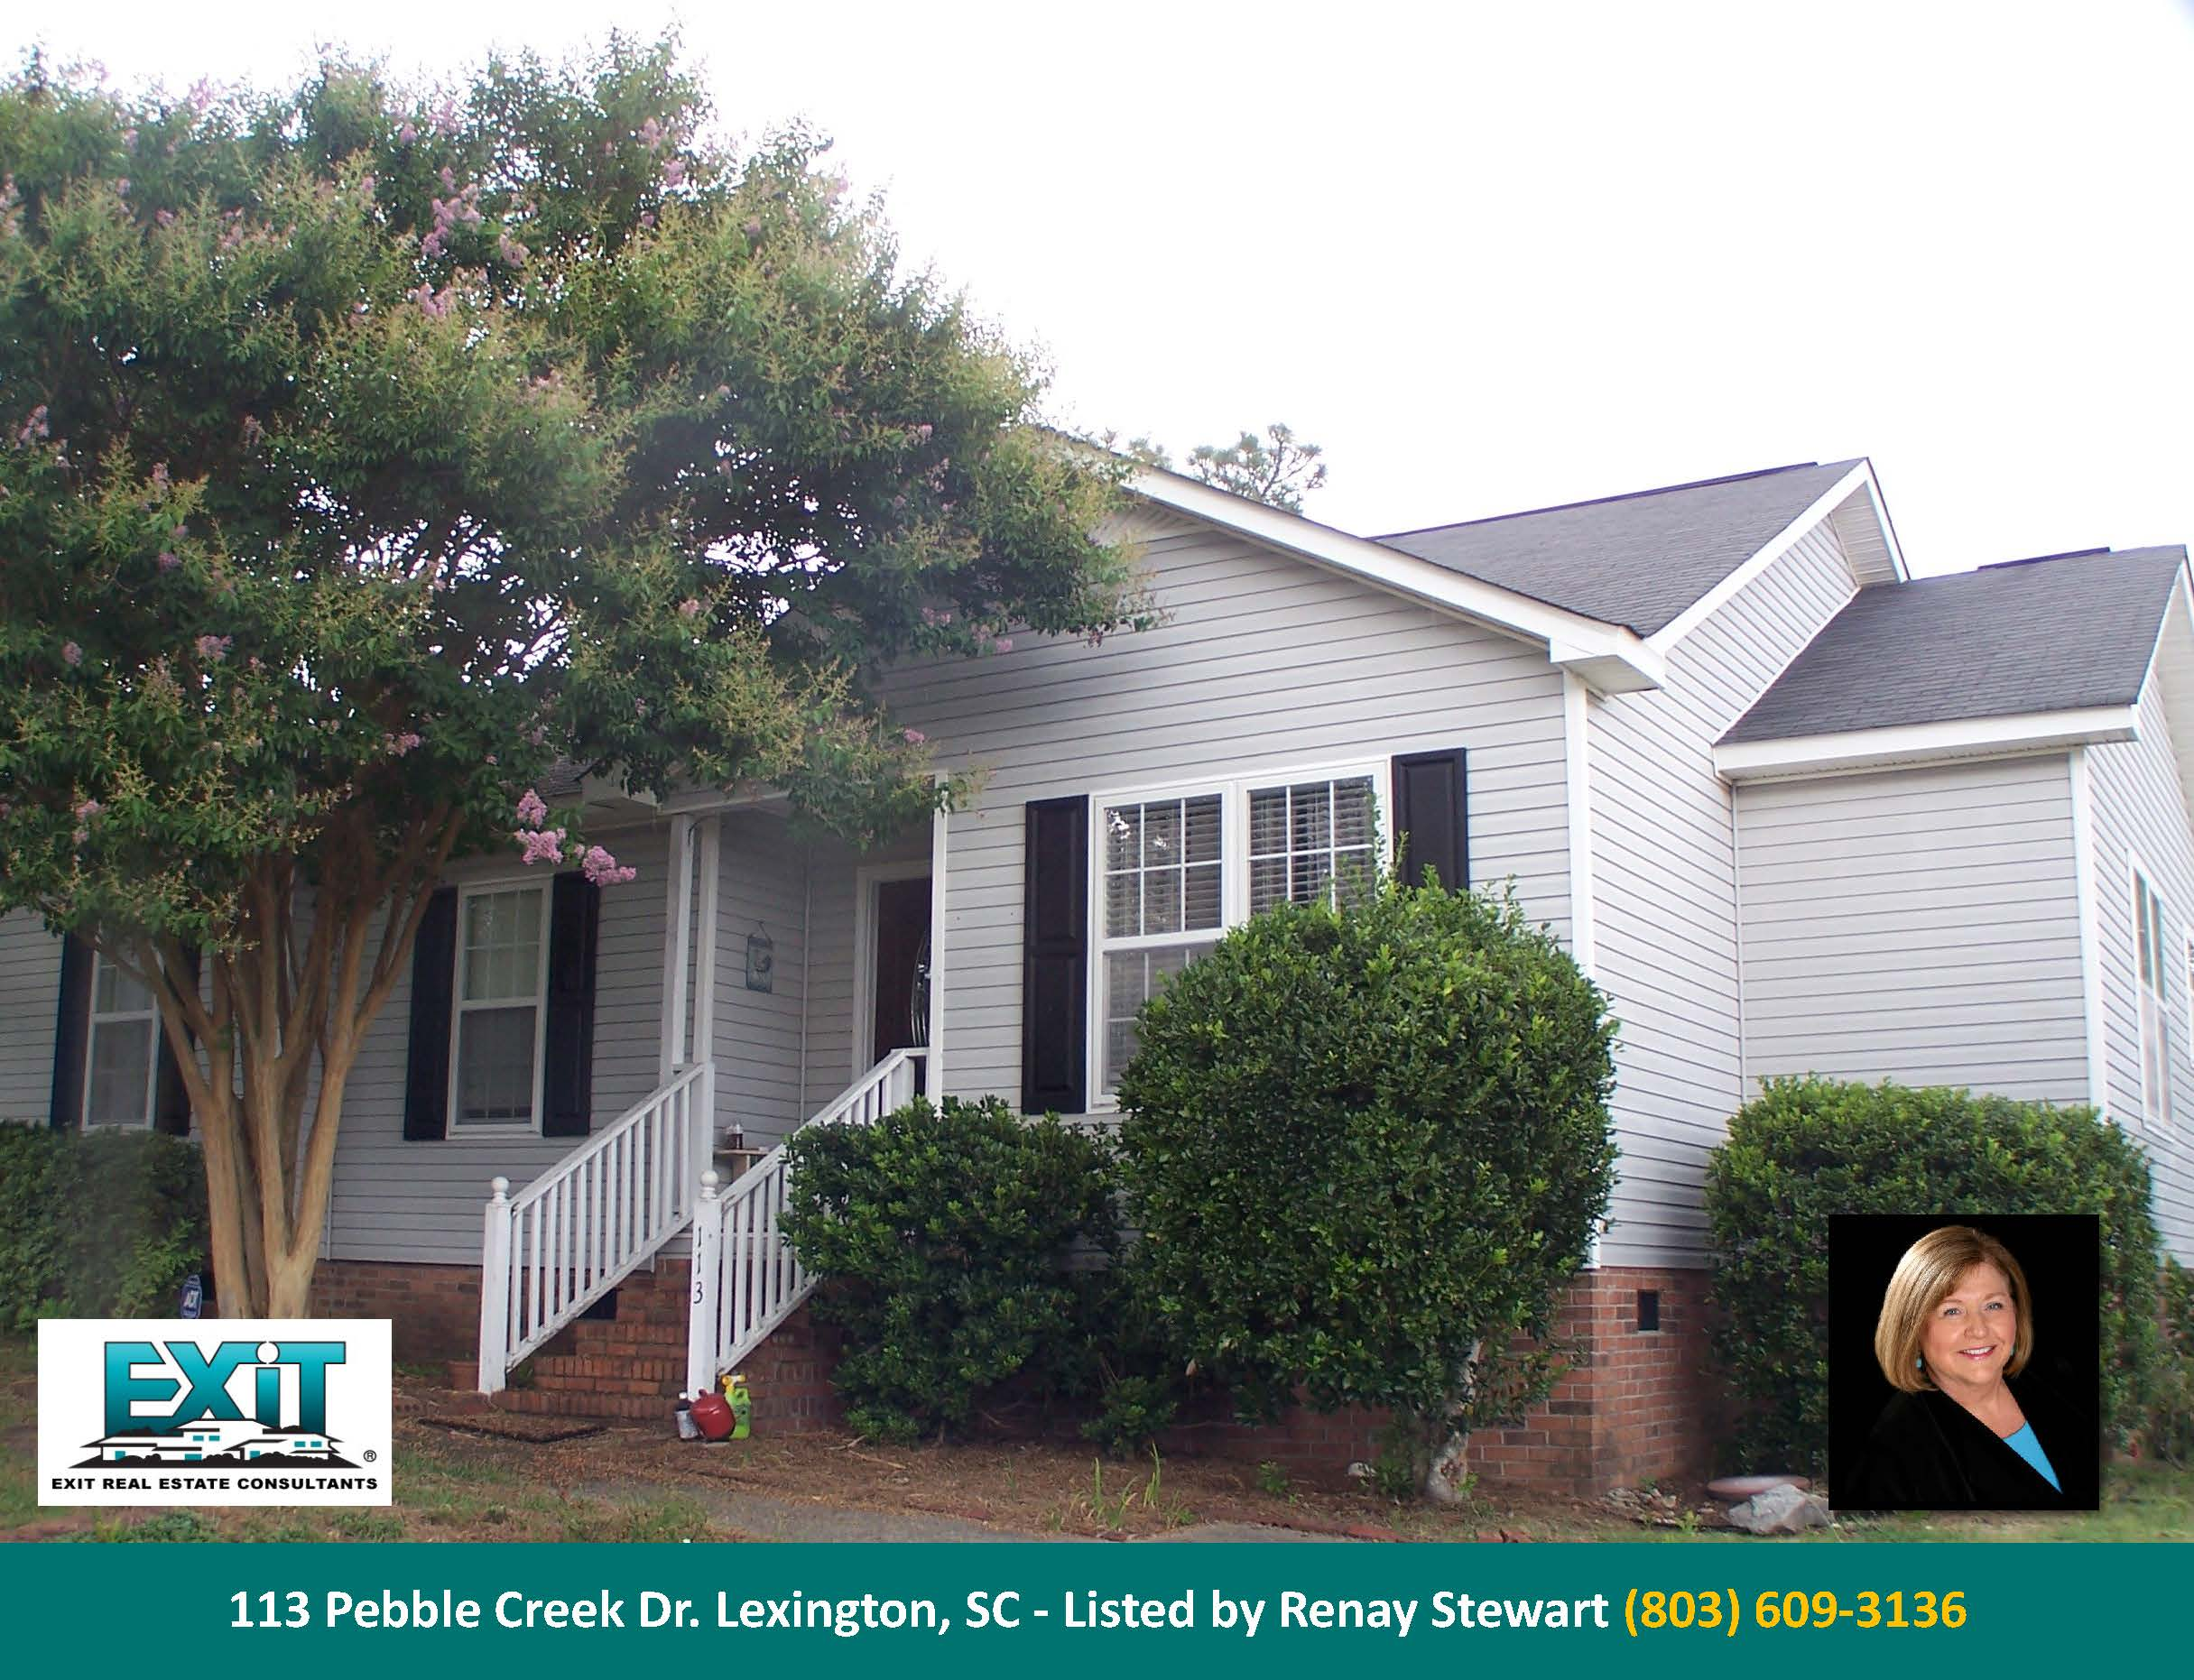 Just Listed In Pebble Creek